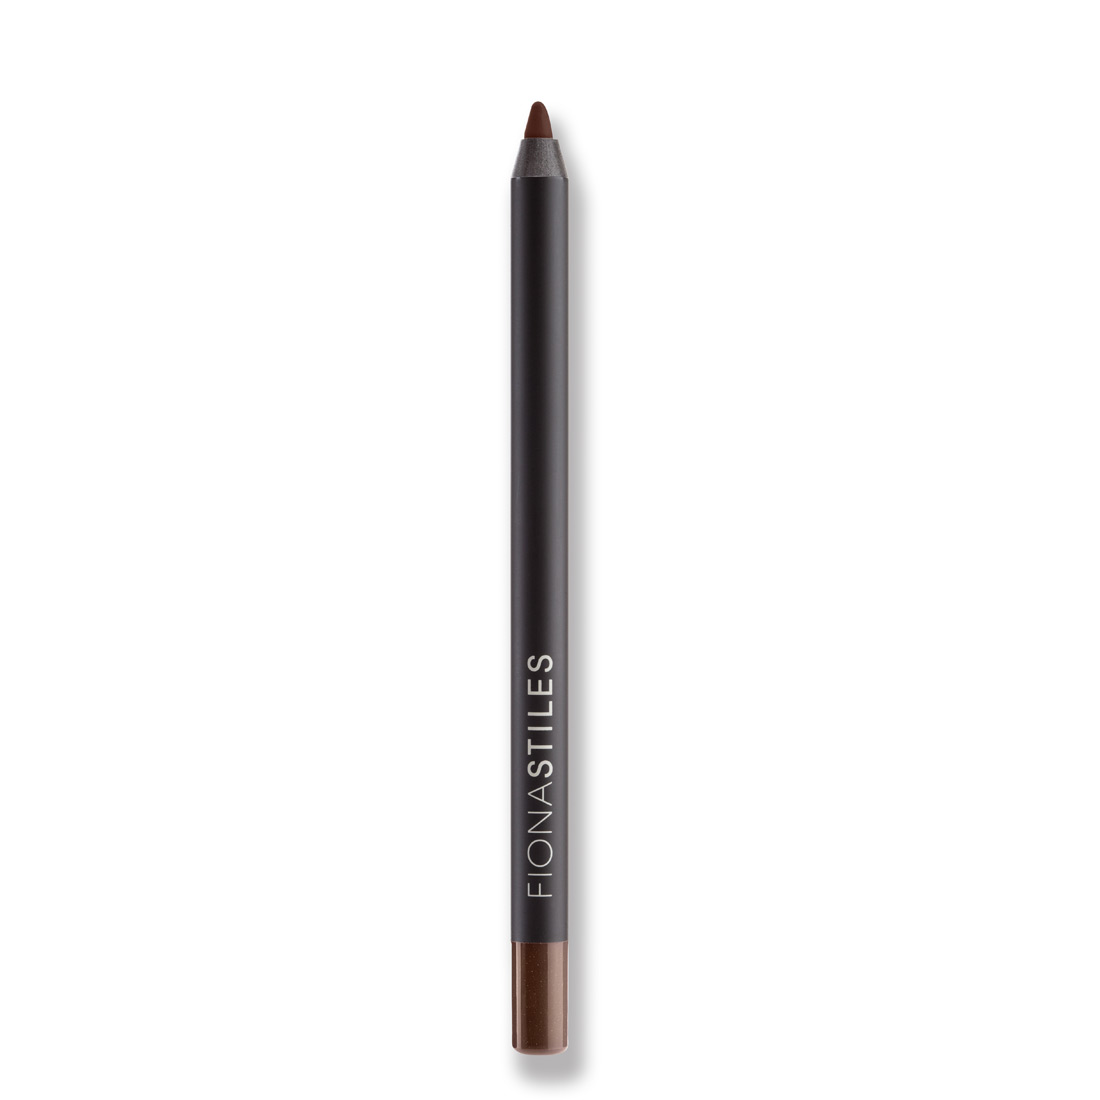 Ultra-Smooth Waterproof Eye Defining Pencil